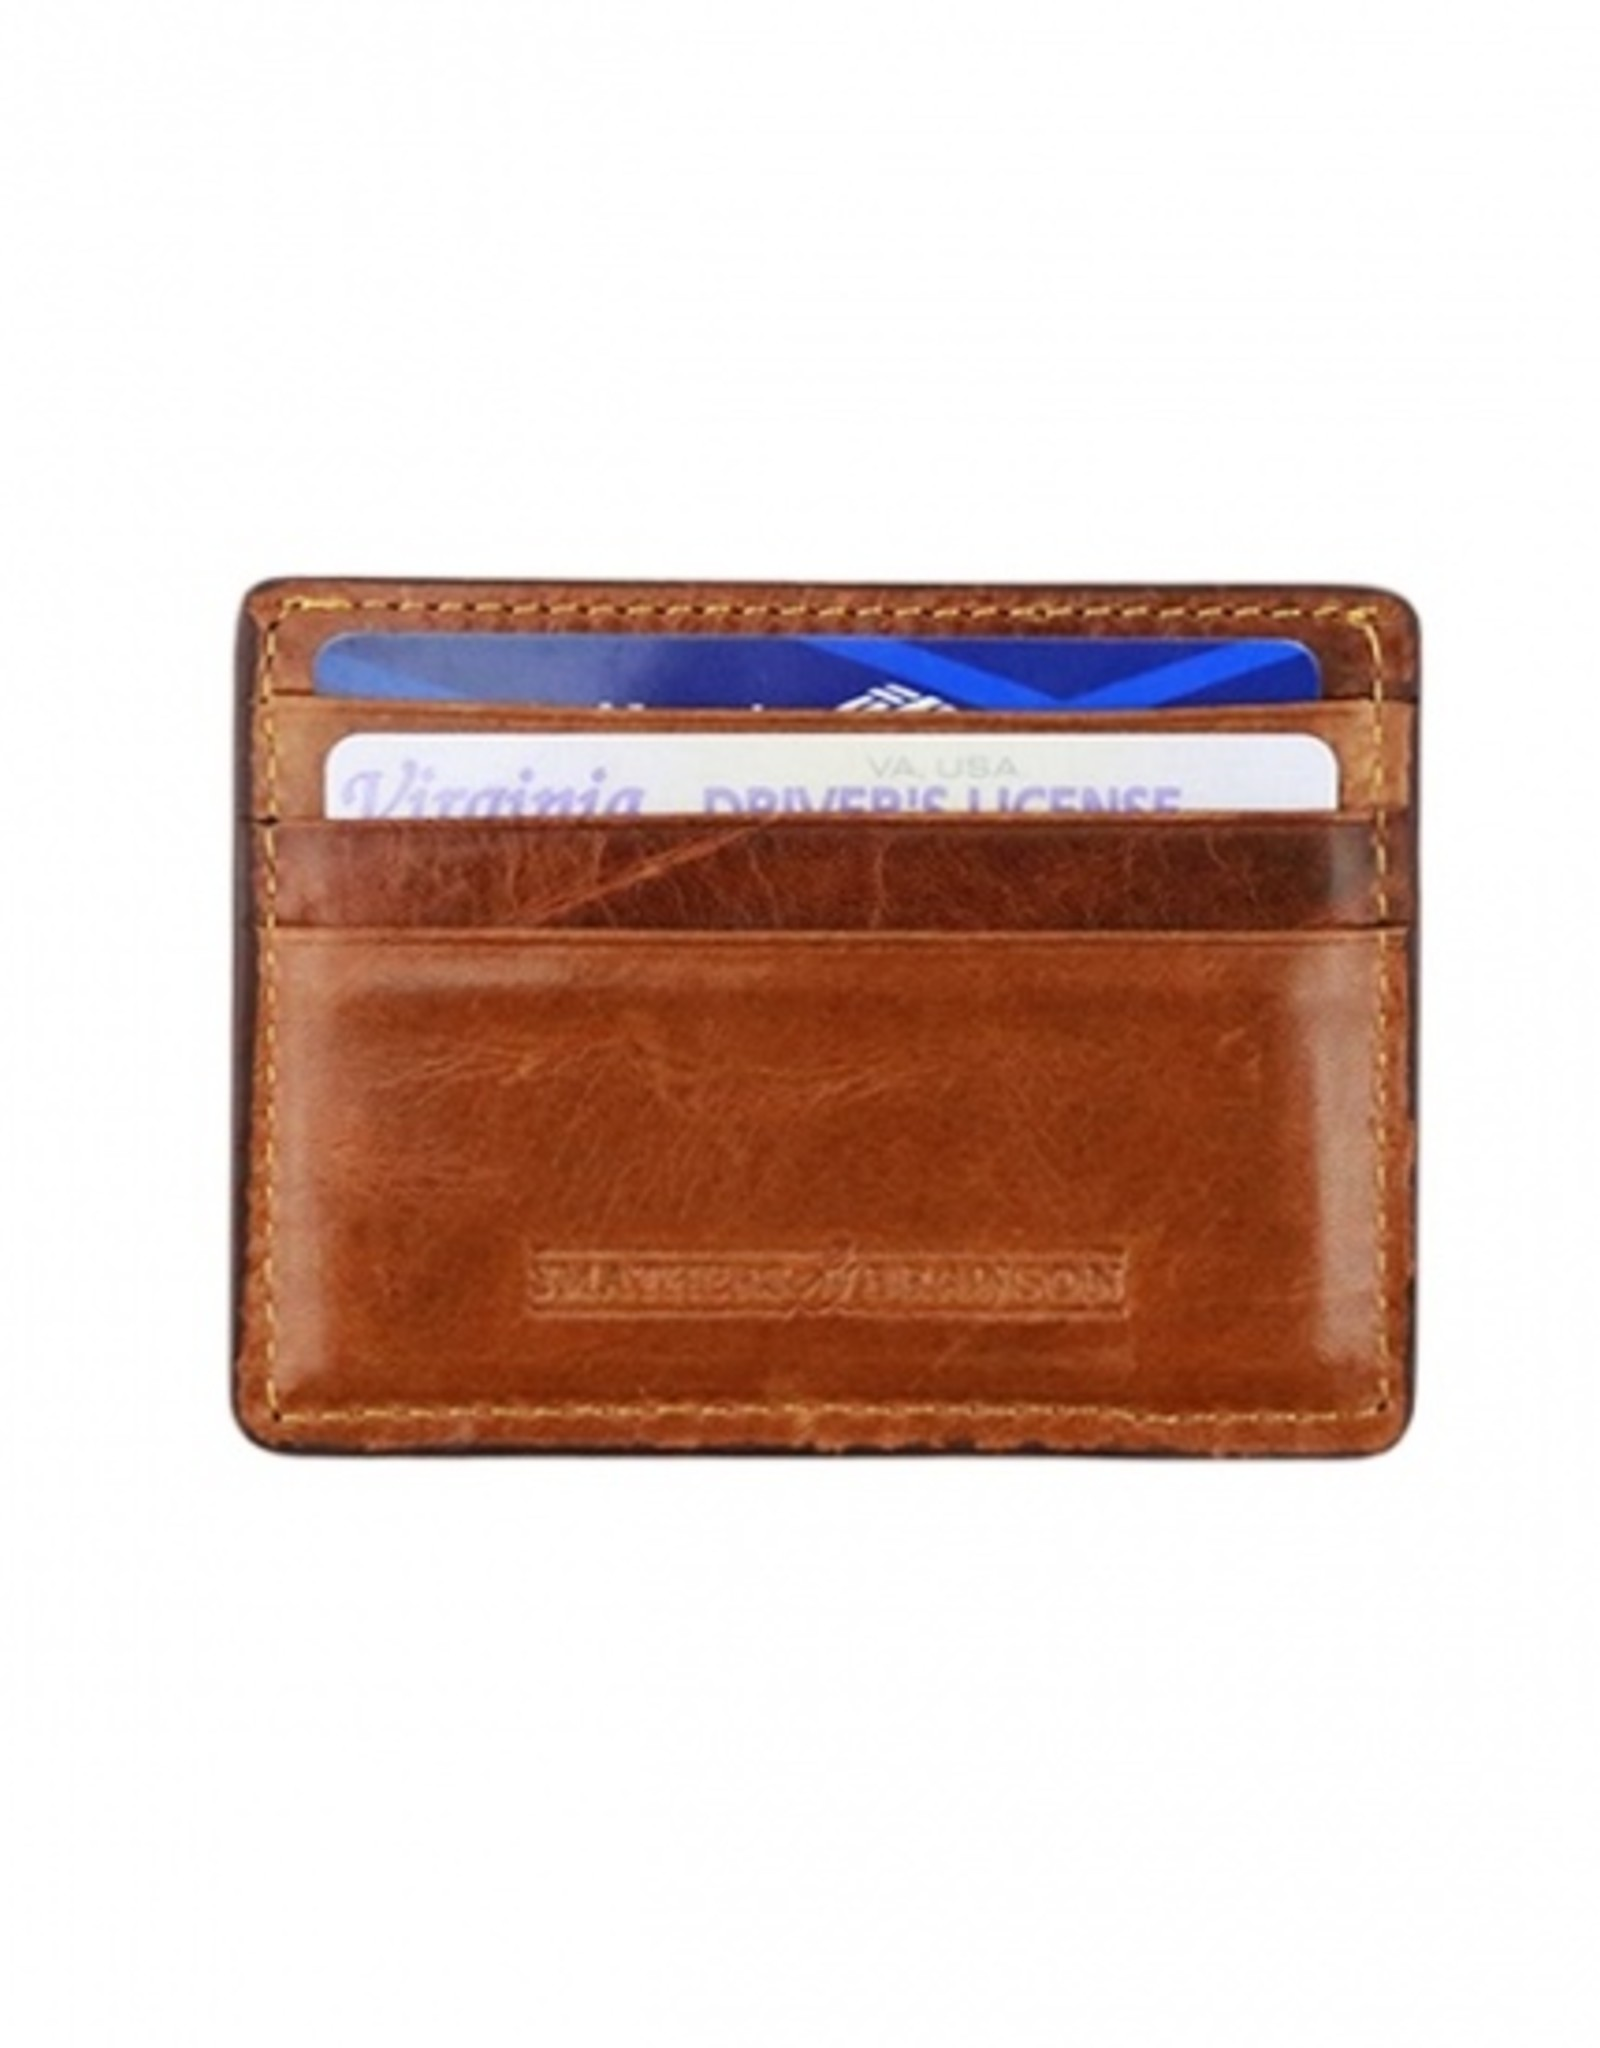 Smathers and Branson Armed Forces Flag Credit Card Wallet